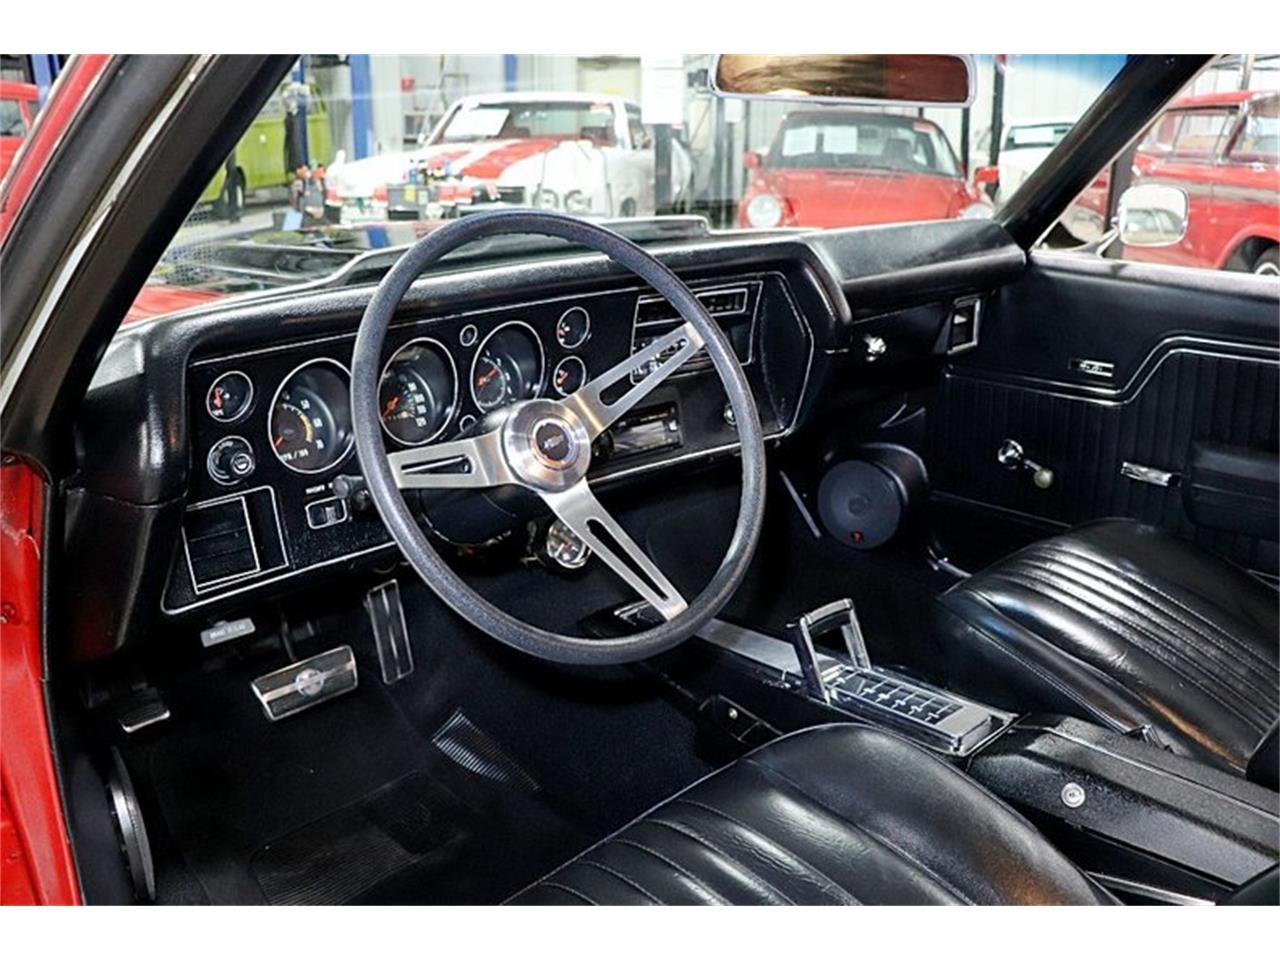 Large Picture of Classic 1972 Chevrolet Chevelle located in Michigan - $38,900.00 Offered by GR Auto Gallery - PZ5G